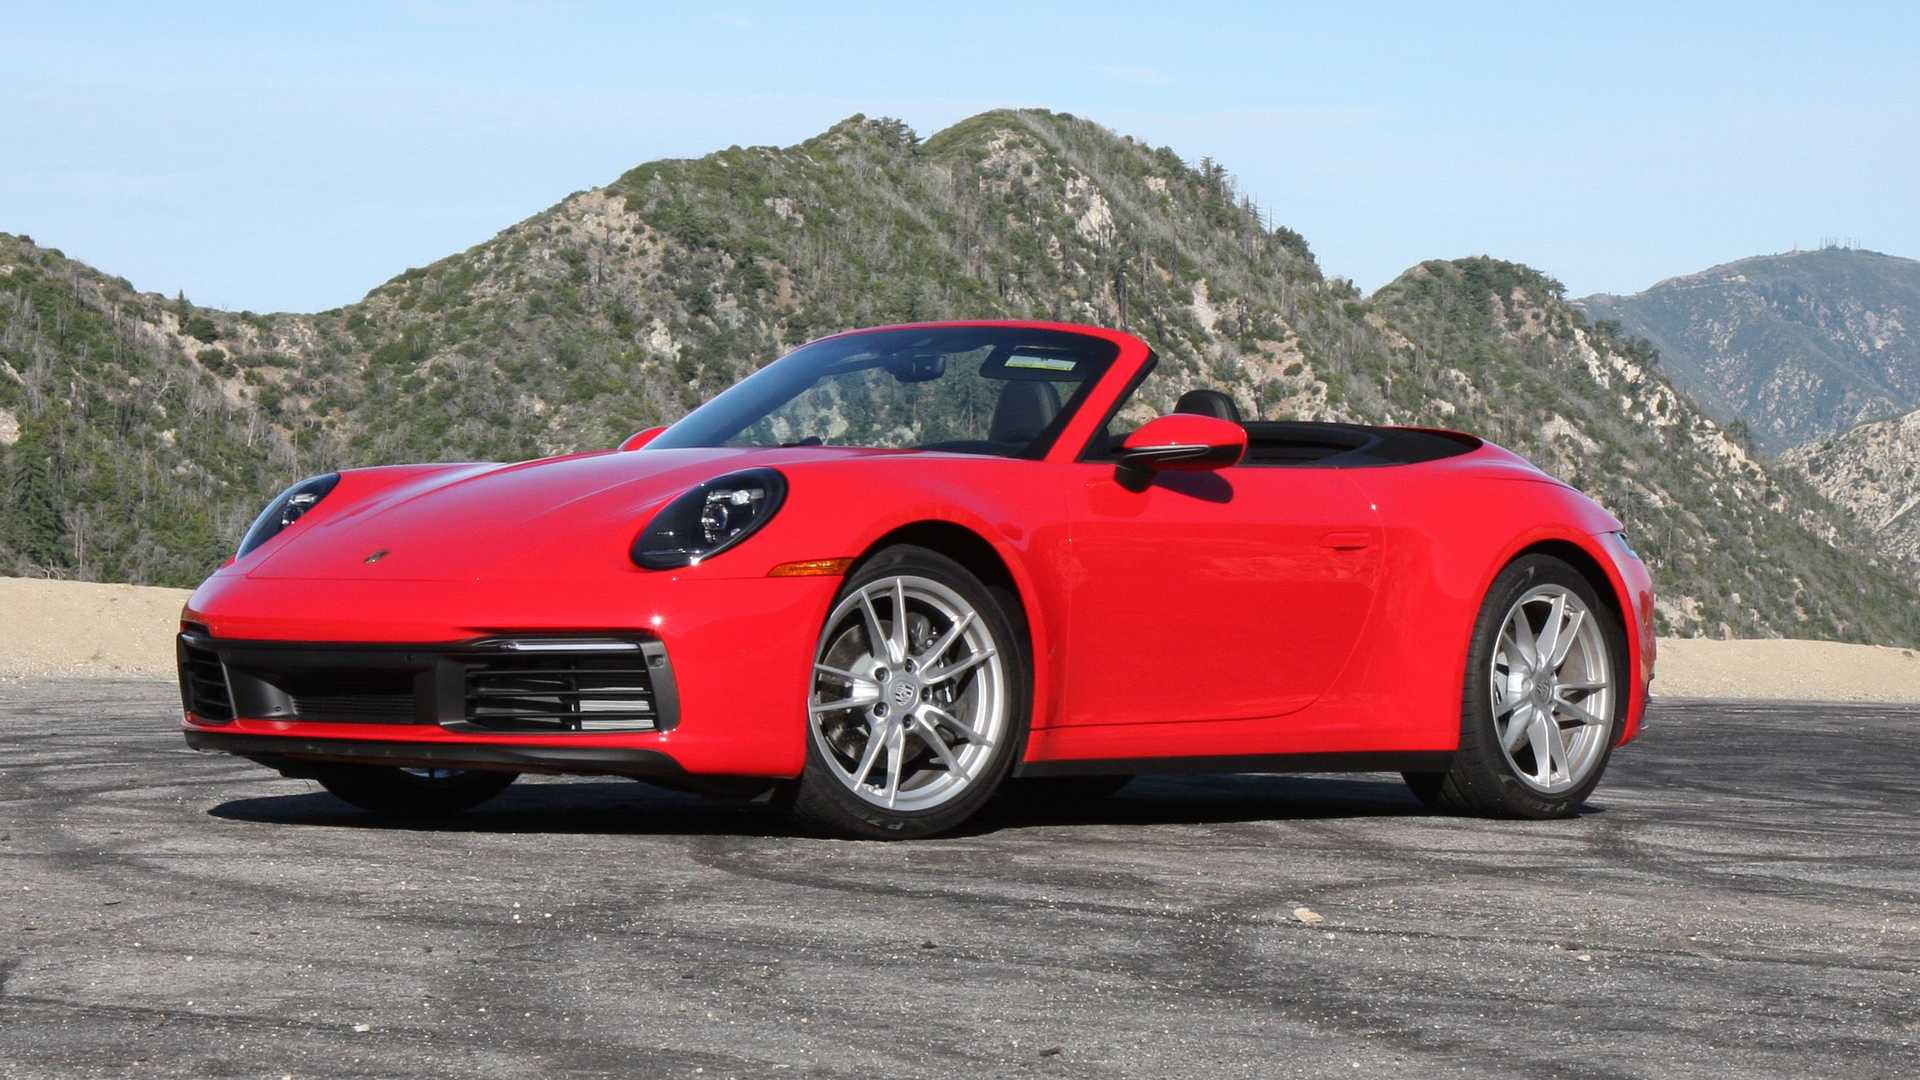 2020 Porsche 911 Carrera Cabriolet Base Model Beauty